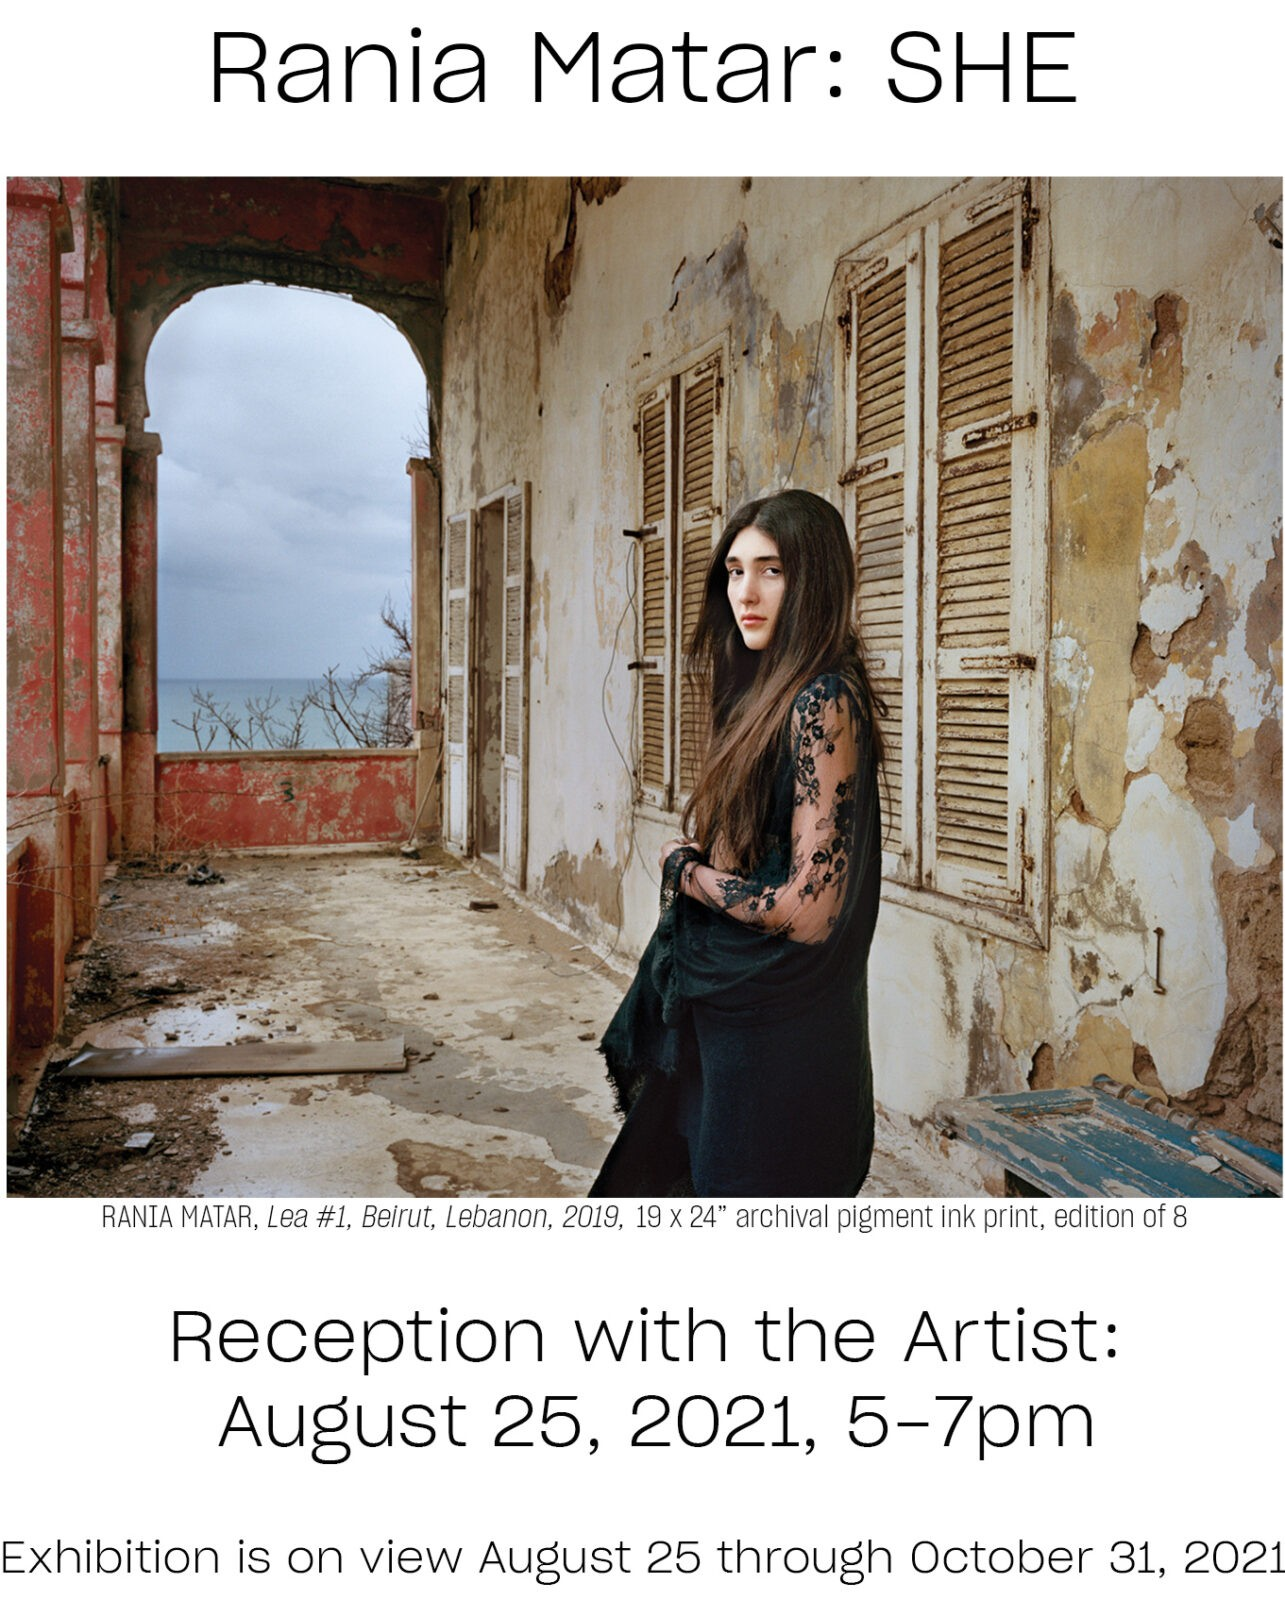 Exhibition with Rania Matar: She, Reception with the artist, August 25, 5-7pm at Obscura Gallery